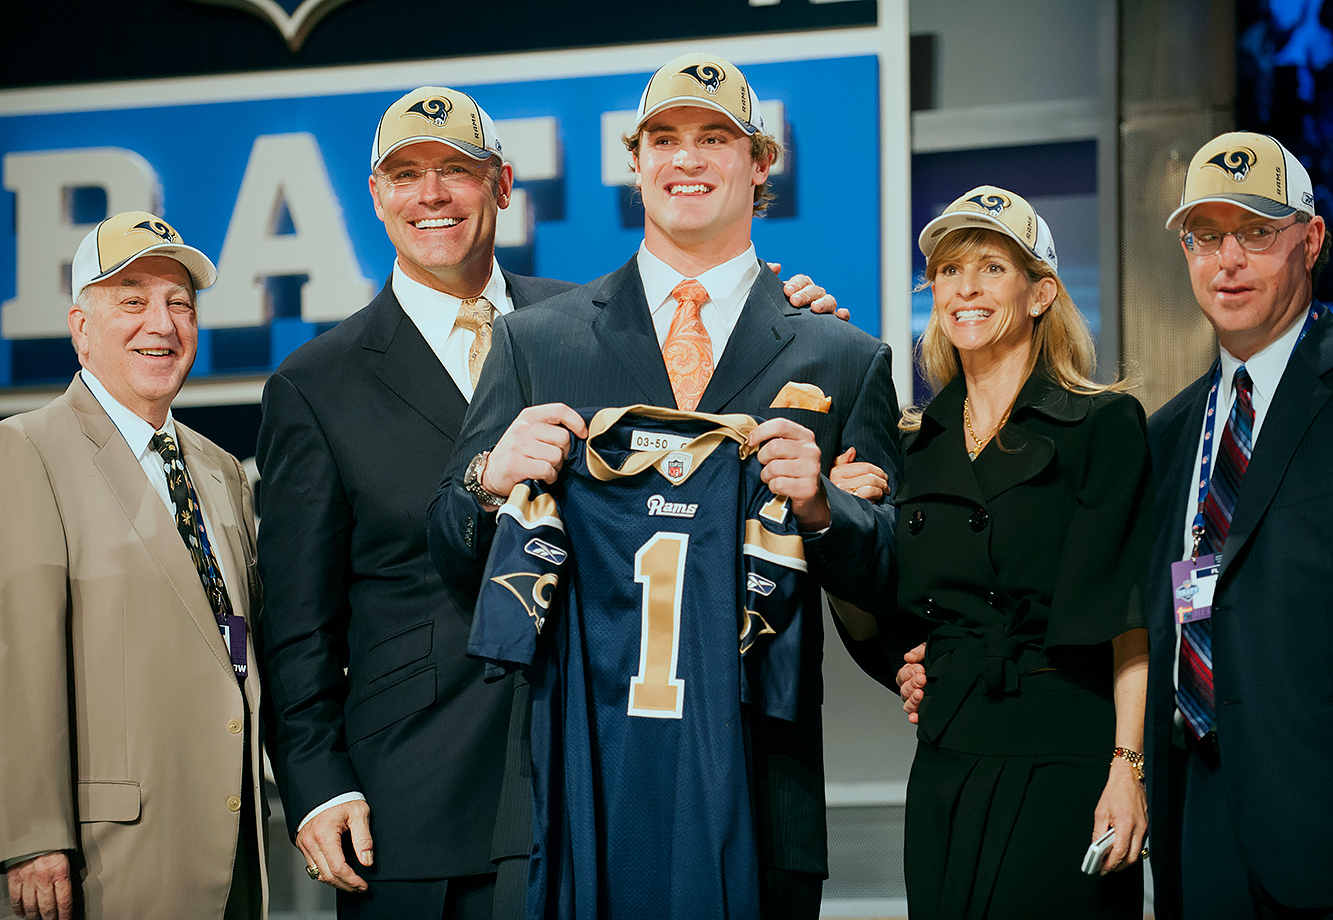 April 26, 2008 — NFL Draft